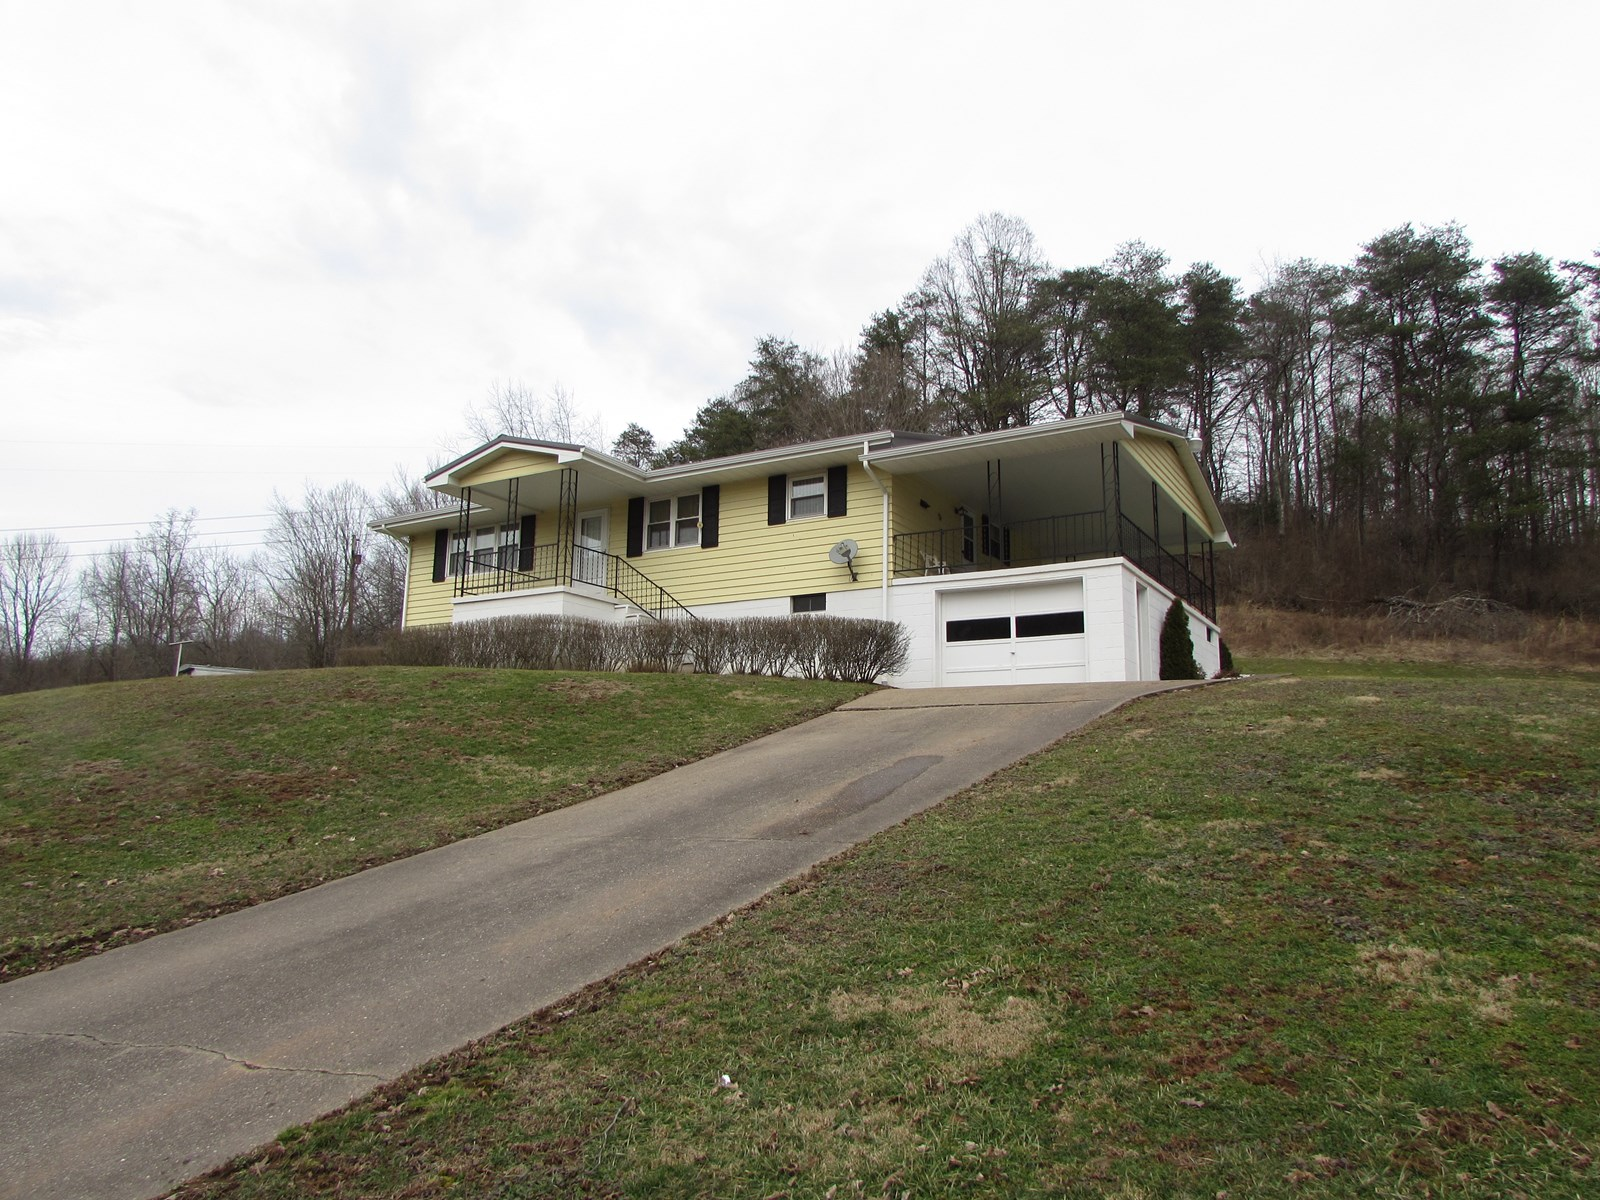 Ranch Style Home located in Ritchie Co., WV